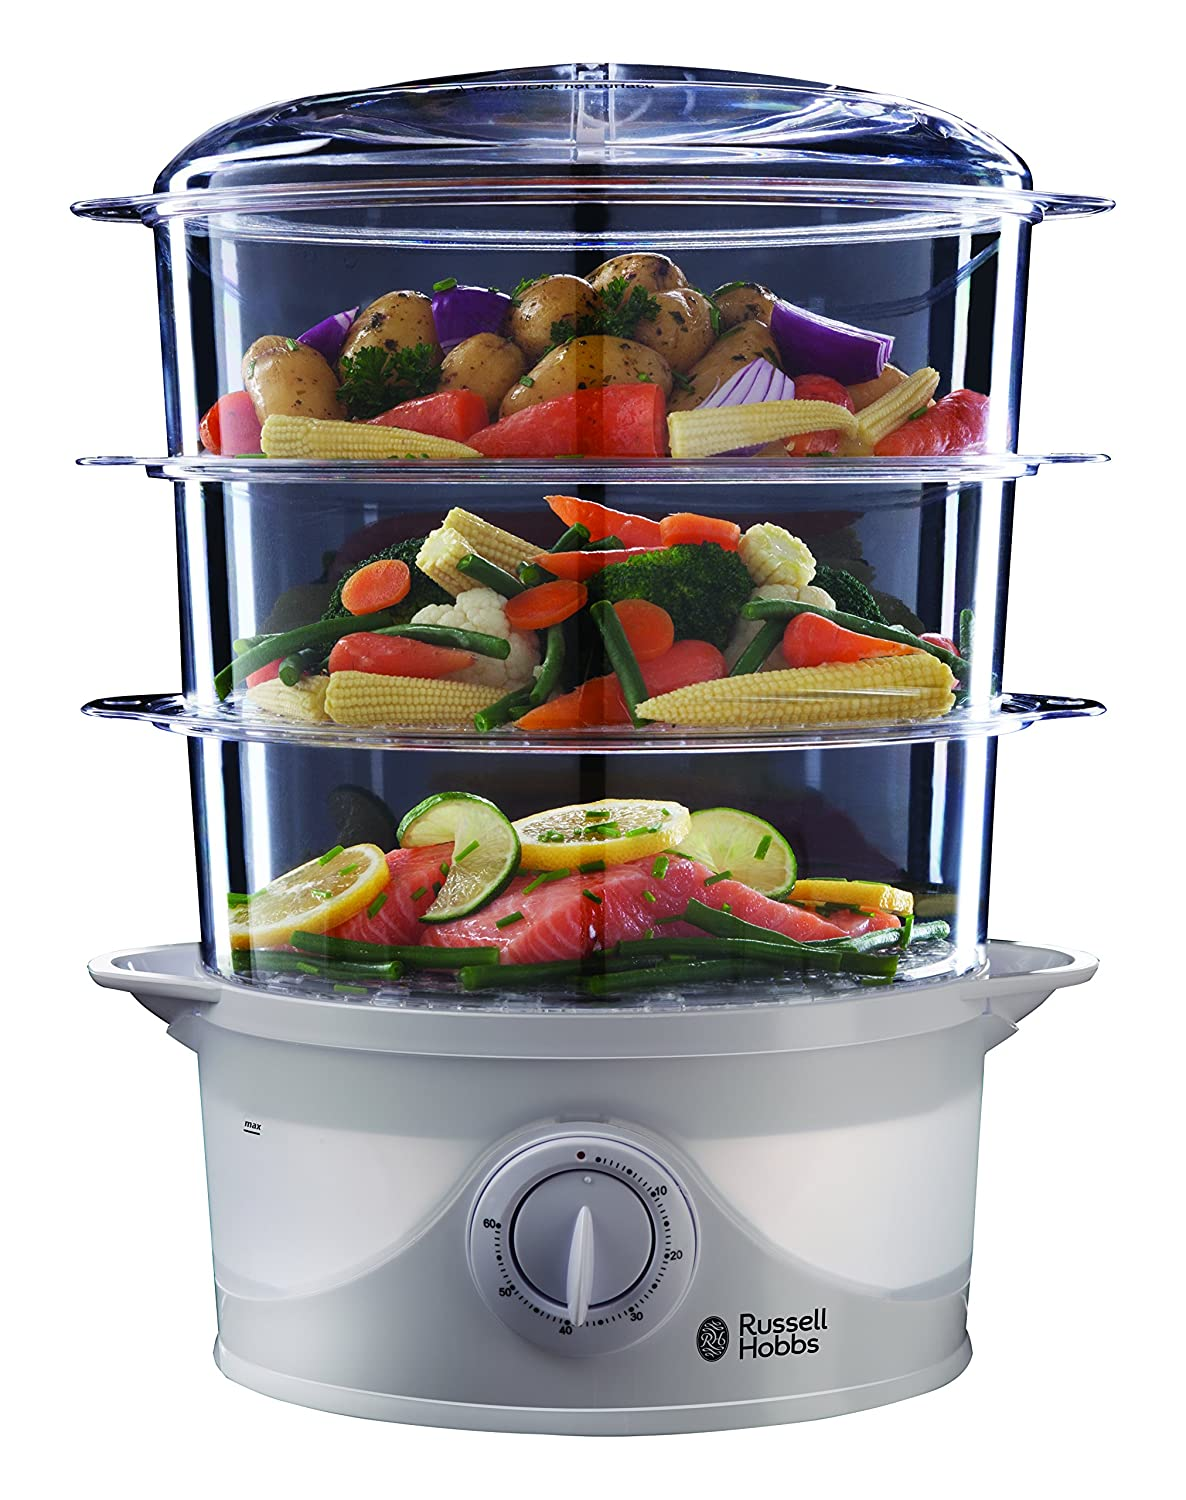 Russell Hobbs 21140 Three Tier 9 Liter 800 Watt Food Steamer, 220V (Not for USA - European Cord)